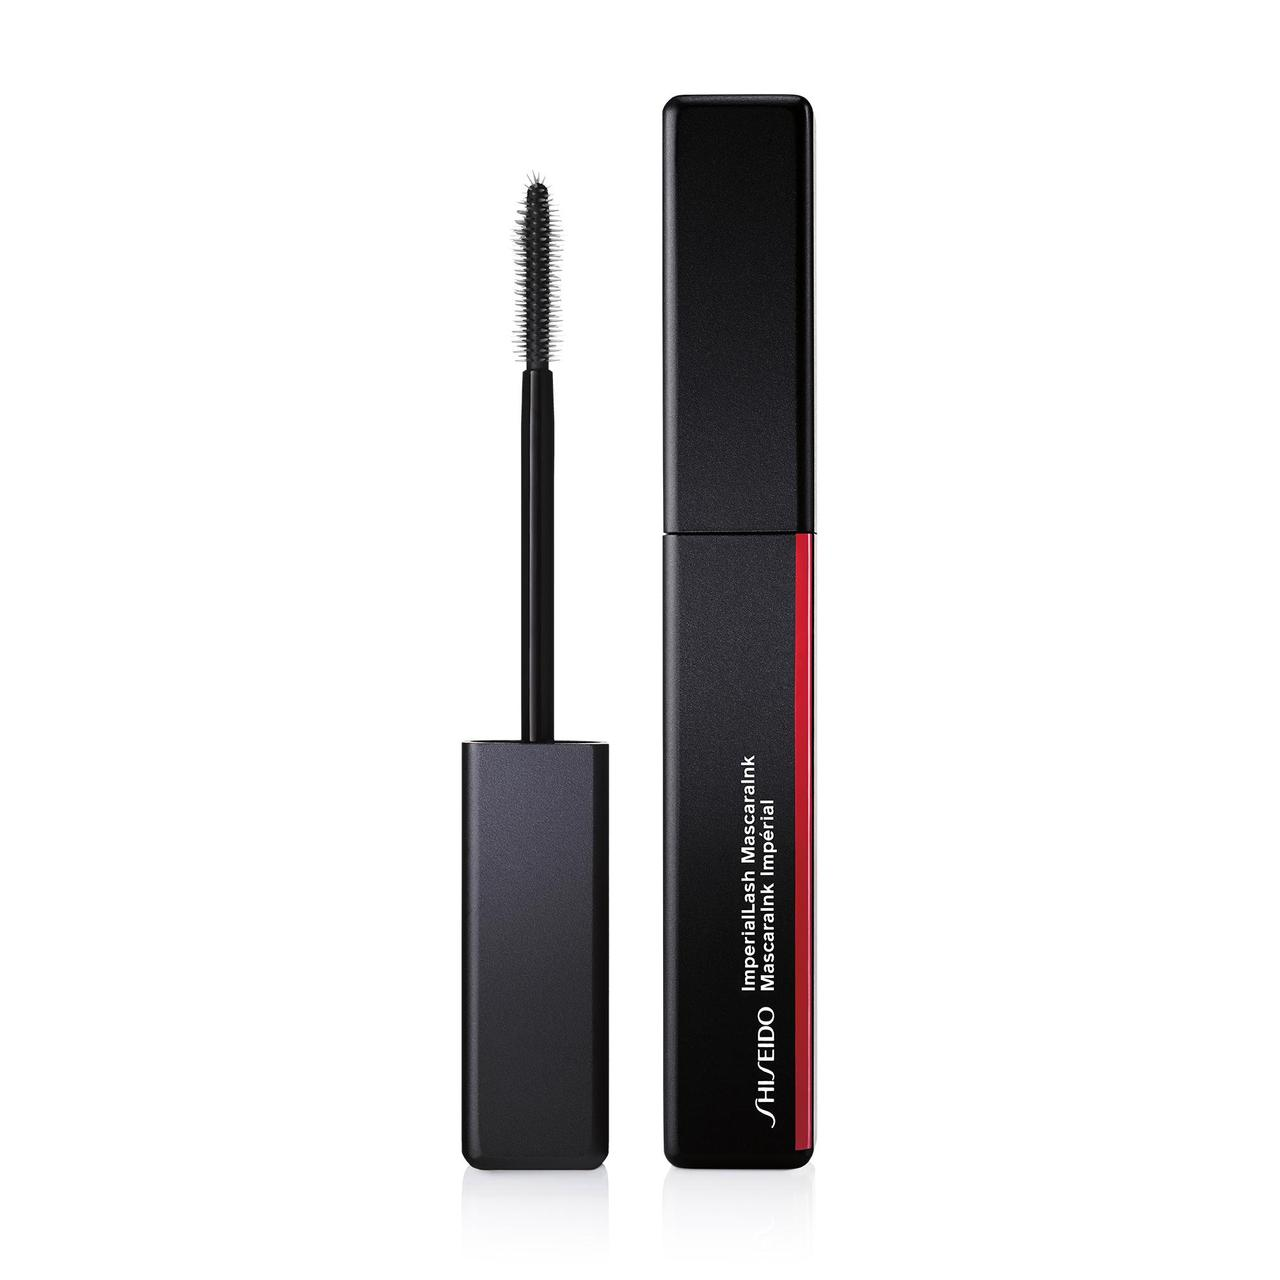 Shiseido ImperialLash Mascara Ink, £25